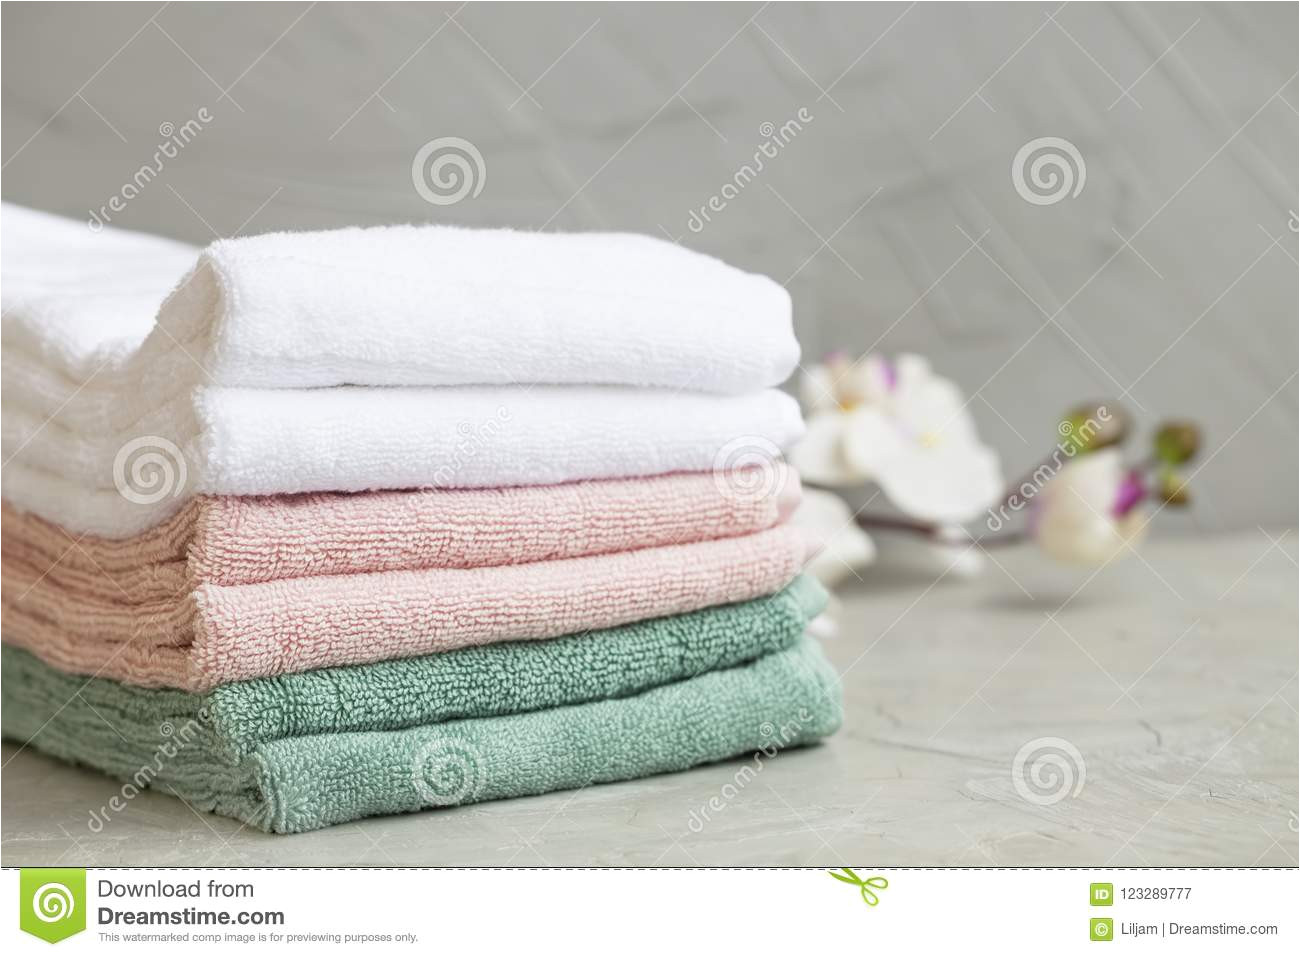 pile of clean cotton bath towels on concrete background laundry or bathroom concept